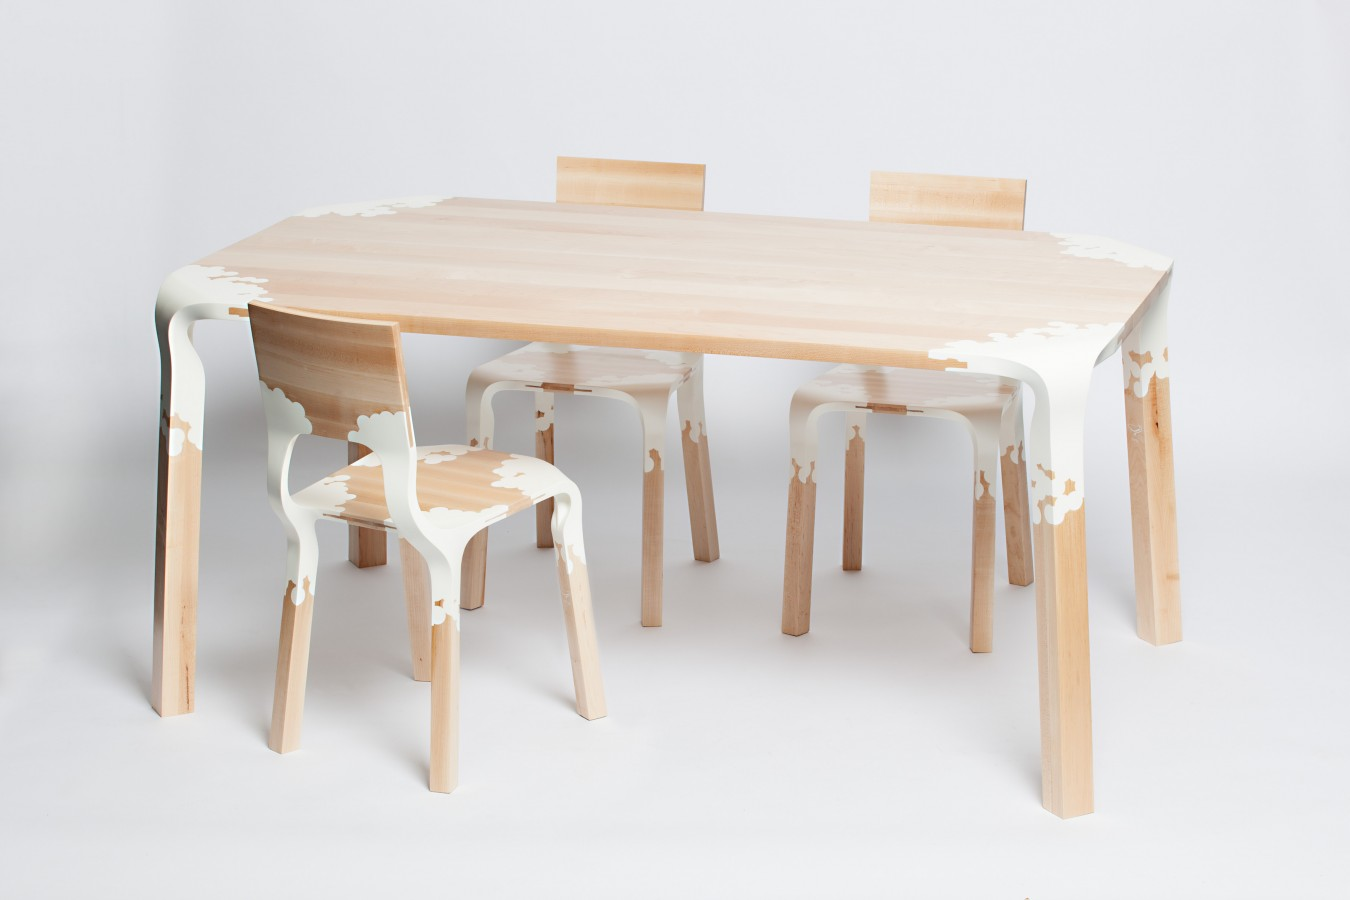 PLASTIC NATURE TABLE AND CHAIRS BY ALEXANDER PELIKAAN